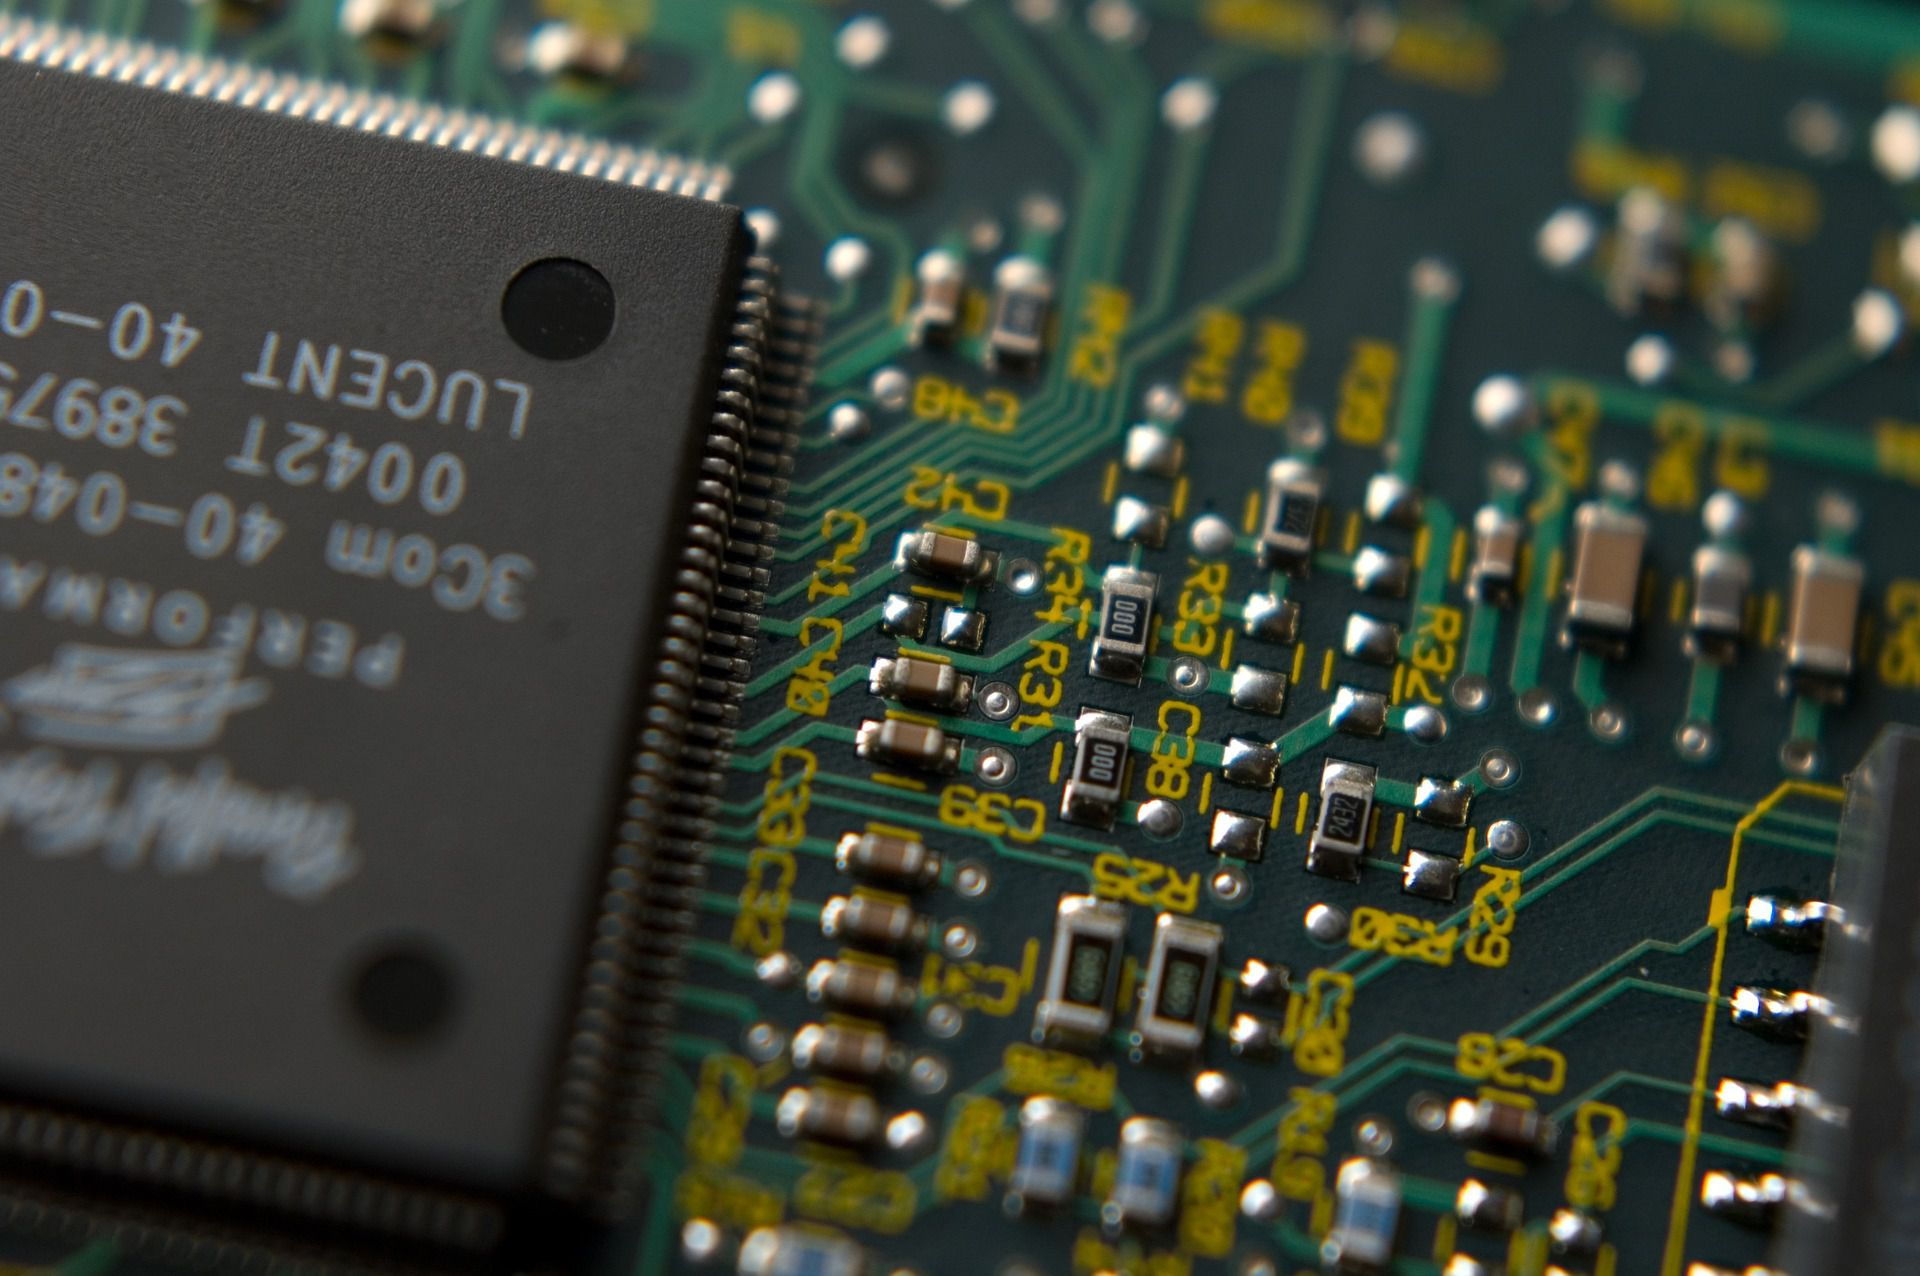 The World's Top 10 Semiconductor Companies